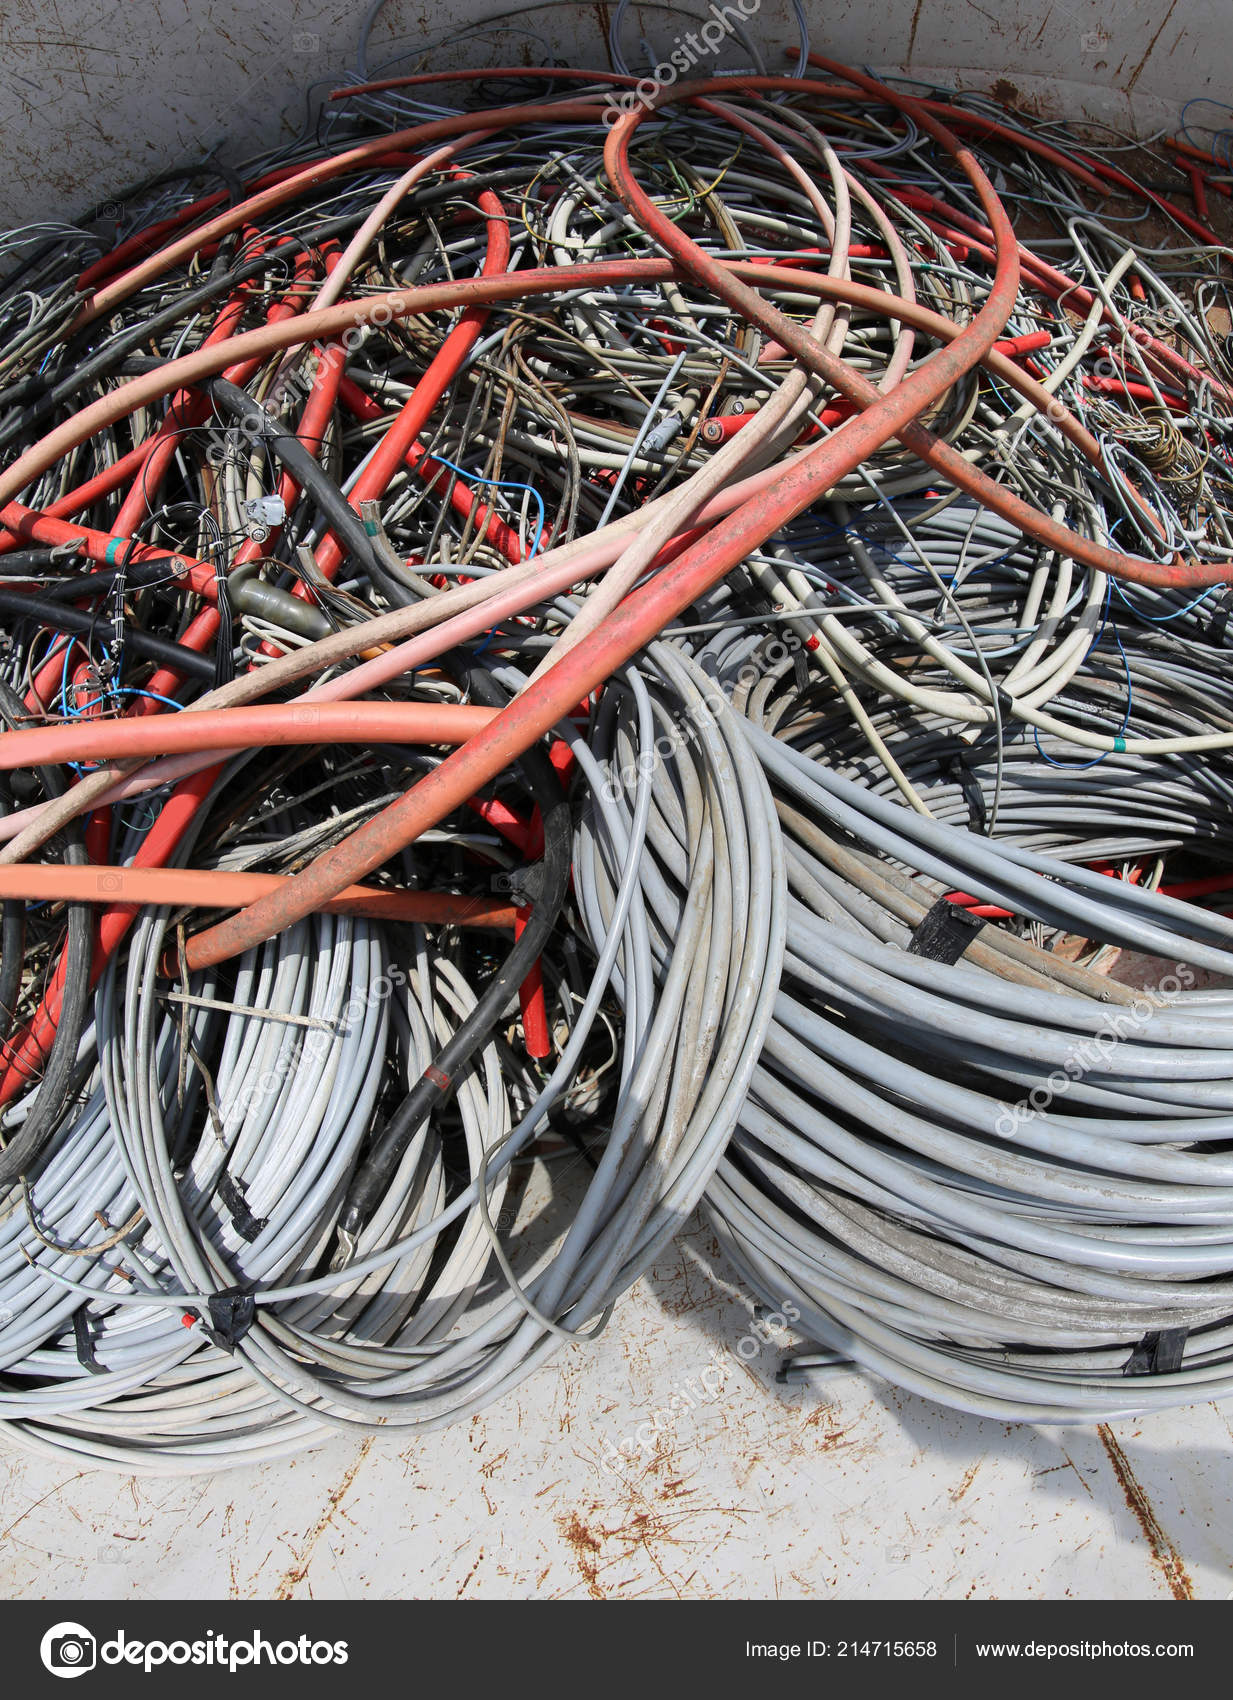 hight resolution of many used electrical cables high voltage wires container stock photo